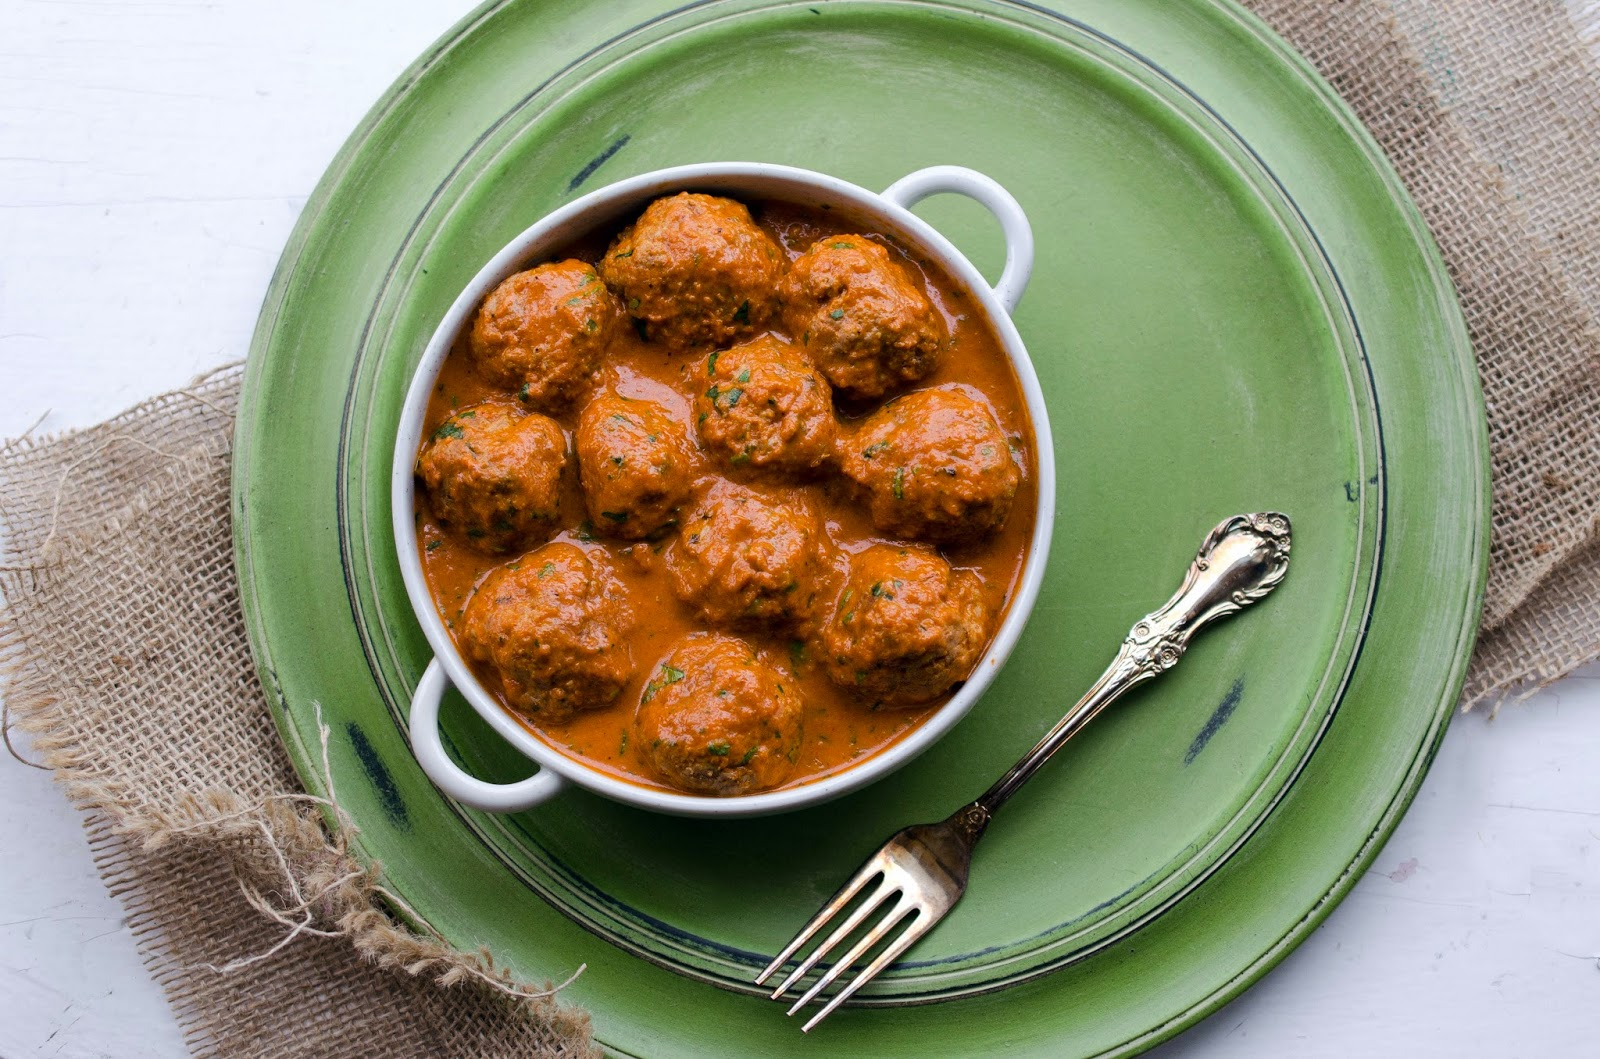 turkey kofte/ kofta (turkey meatballs in a spiced tomato cream sauce)